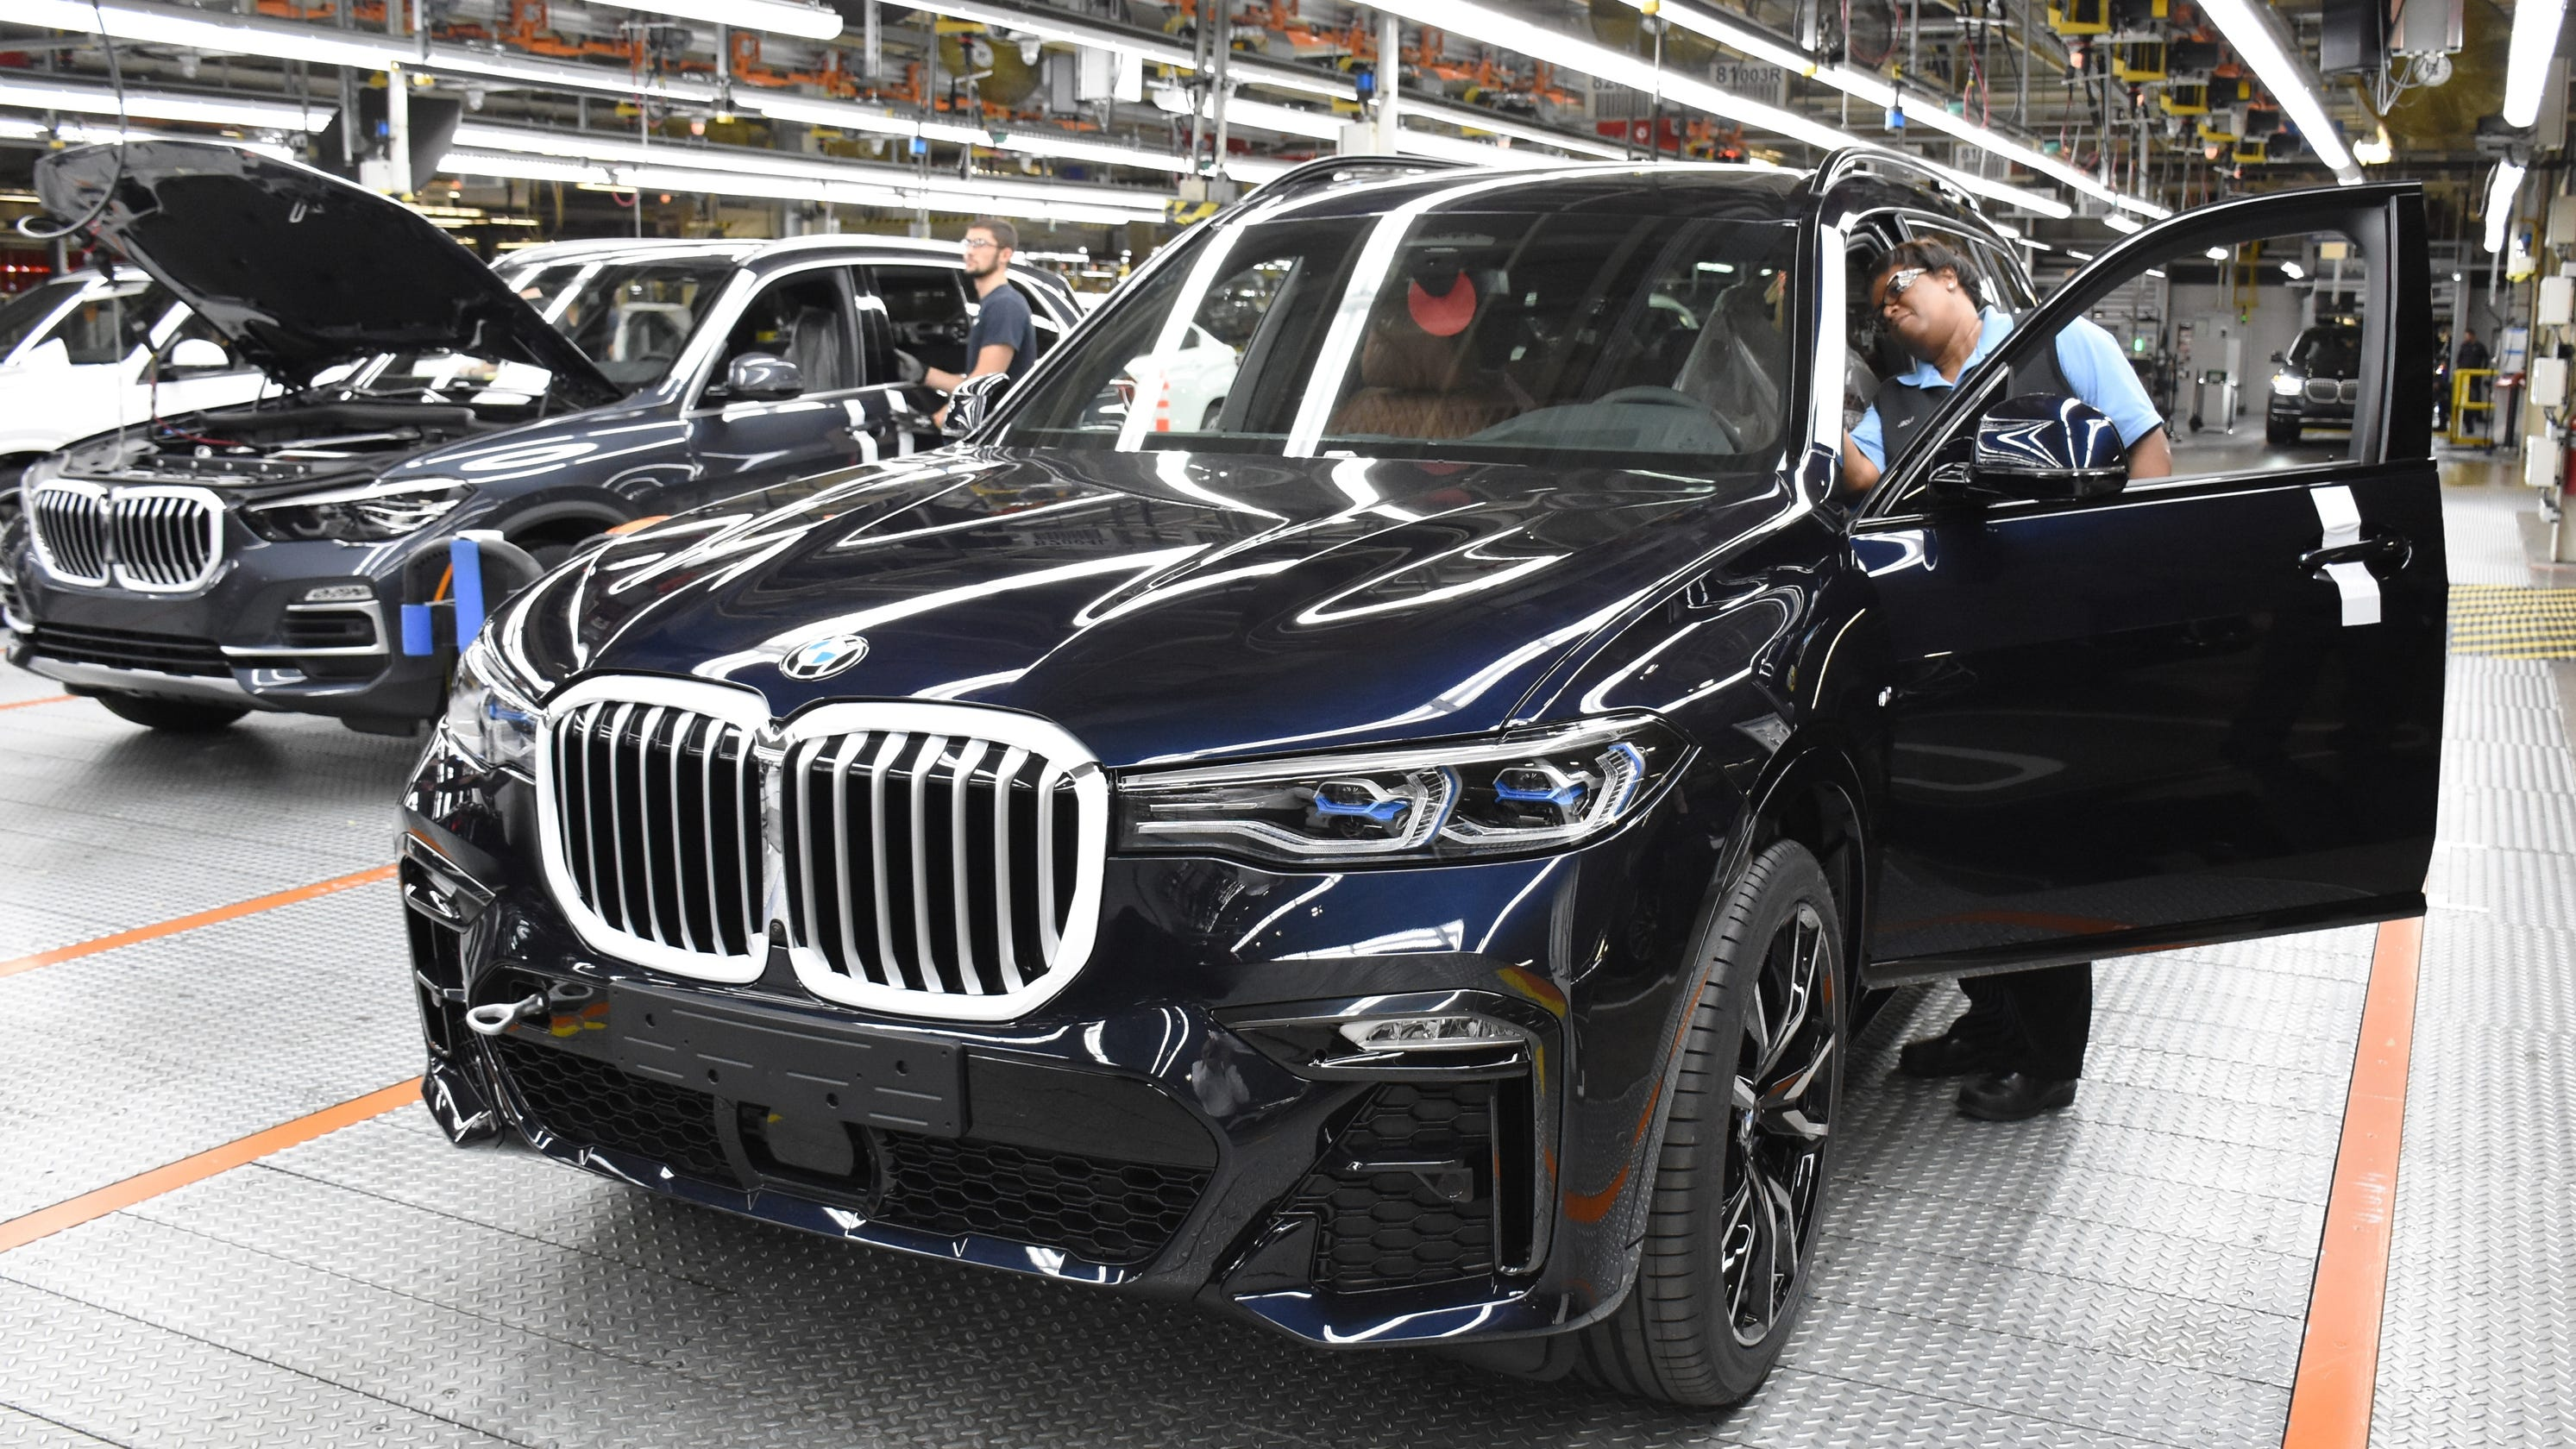 BMW freezes pension plans for US employees including those in SC